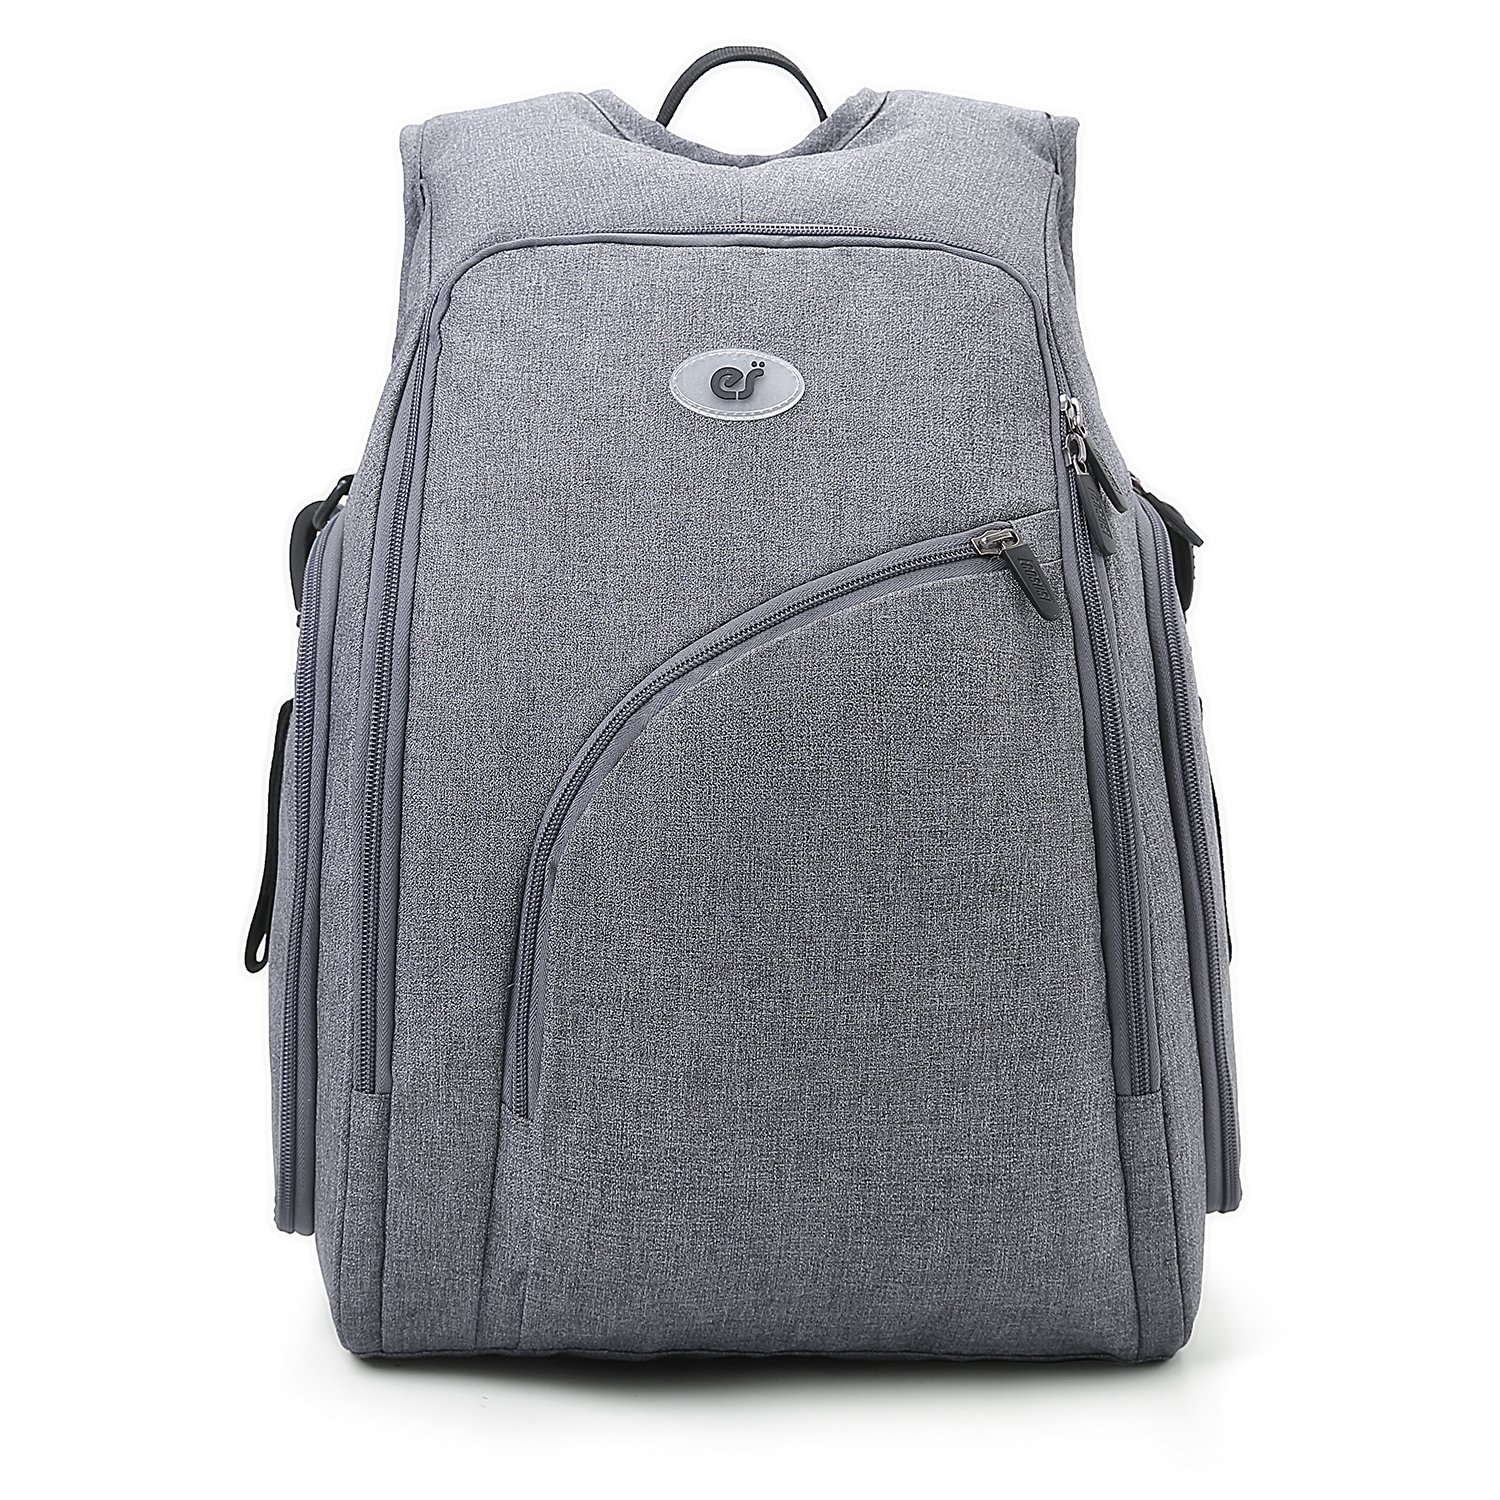 0253d74e2f7e ECOSUSI Diaper Bag Backpack Fully-opened Baby Diaper Bags Mom Bag with  Changing Pad